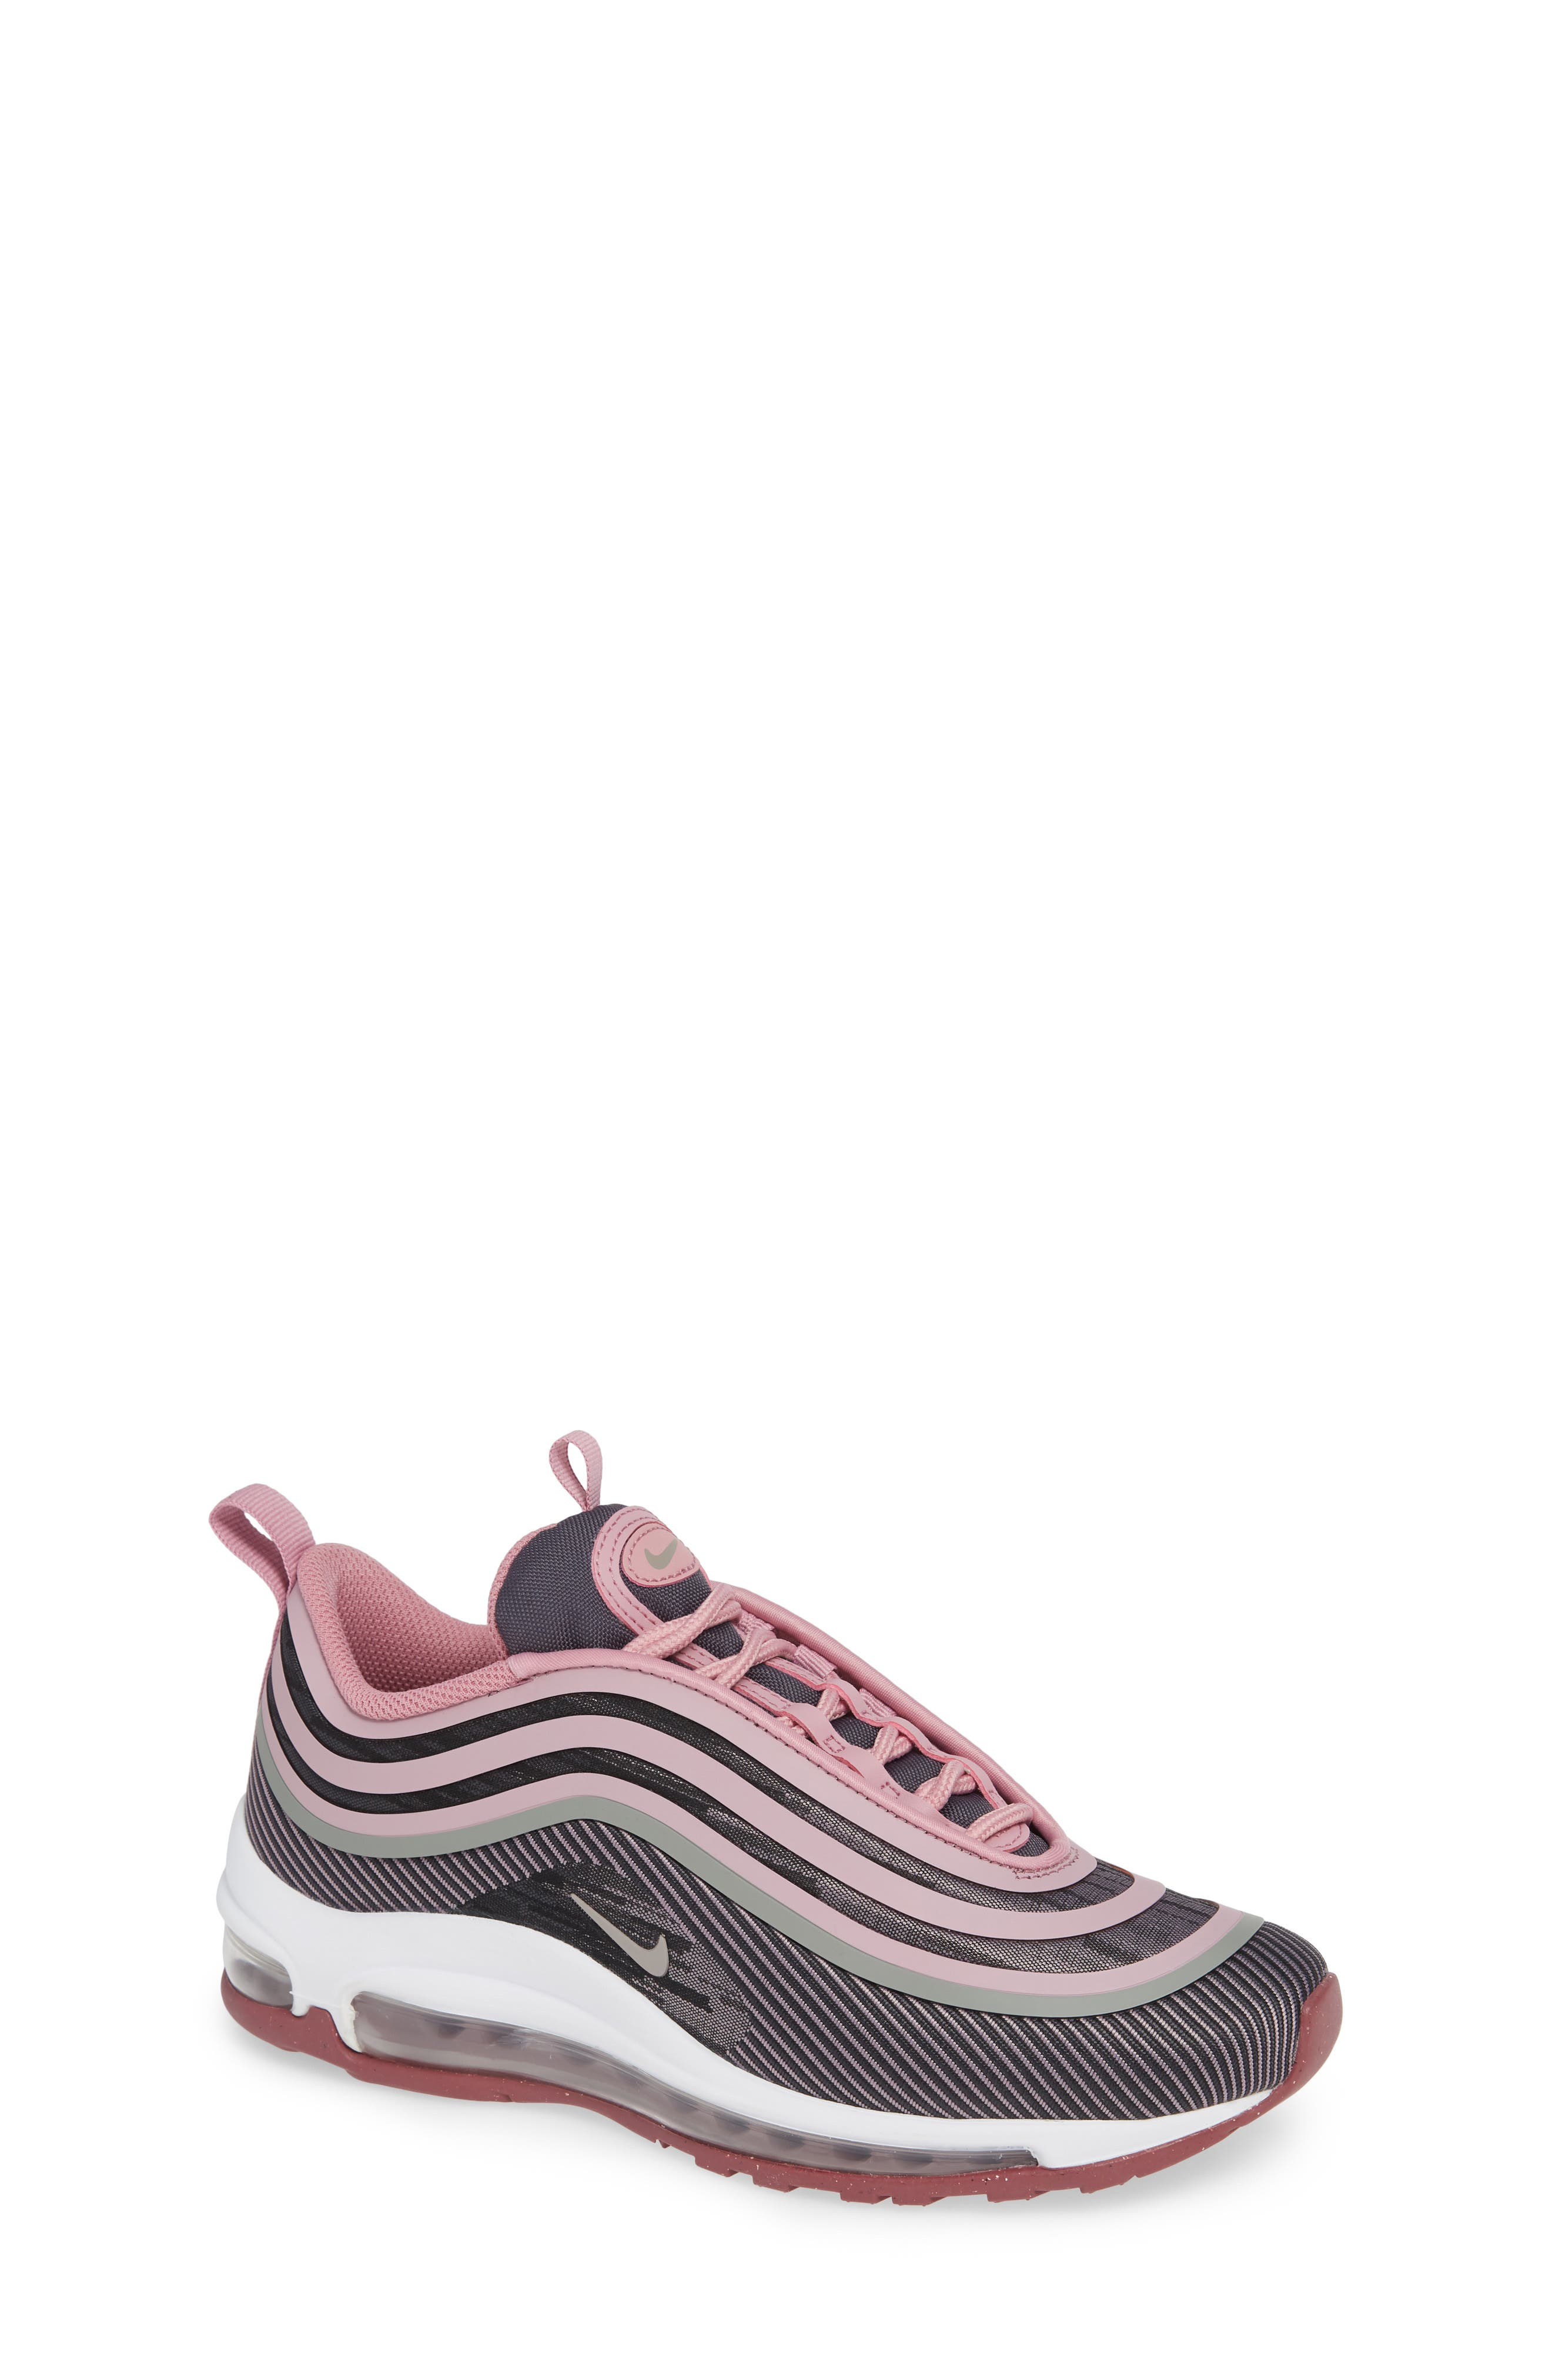 Nordstrom Nike Max Air Pink Shoes qIpRBH